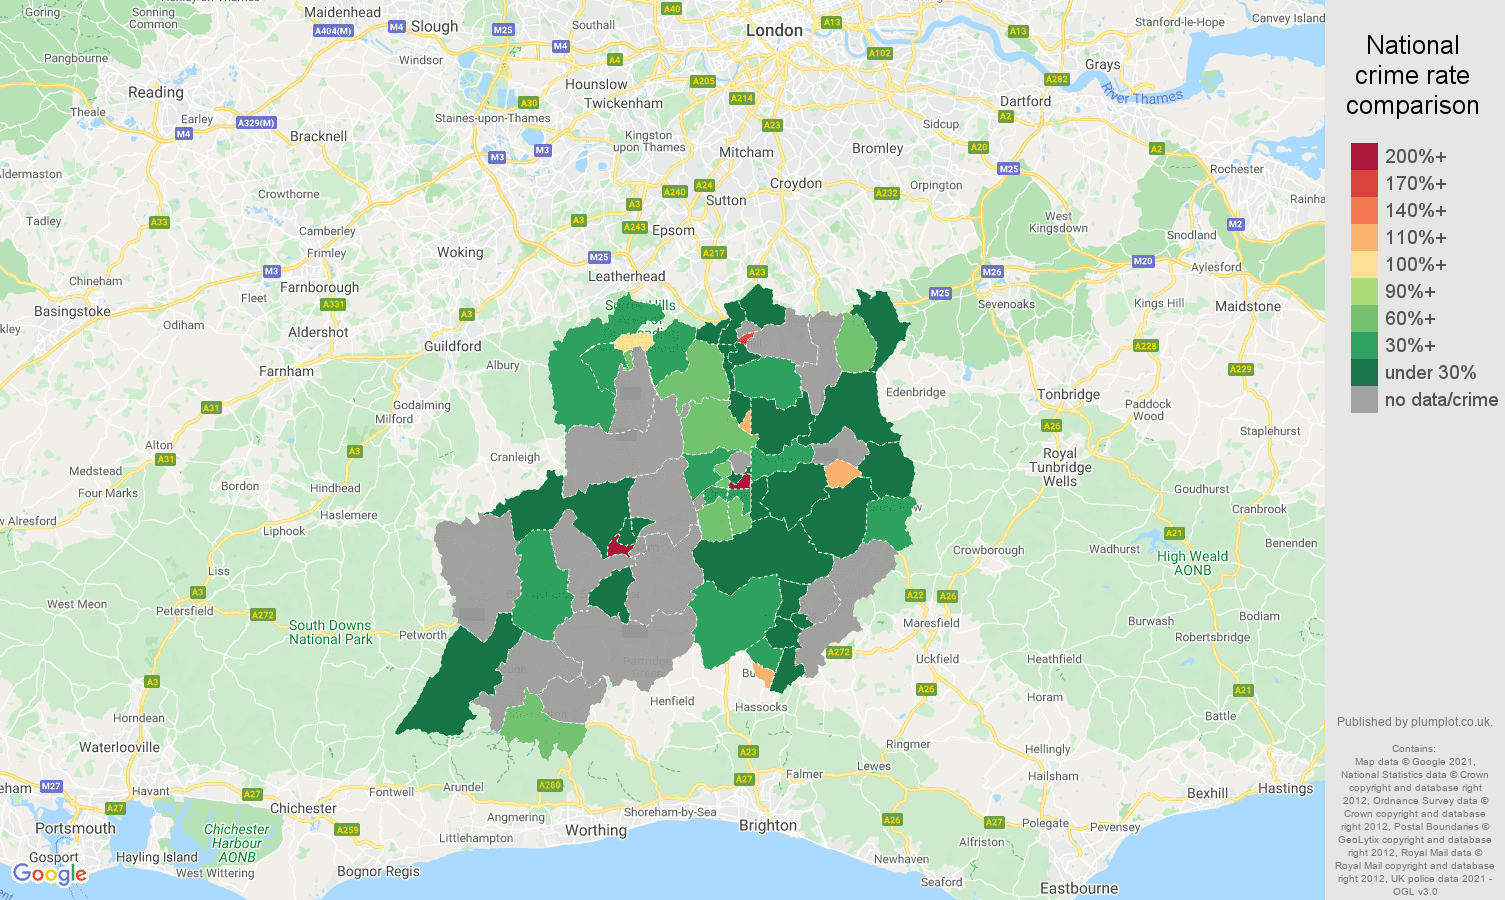 Redhill theft from the person crime rate comparison map